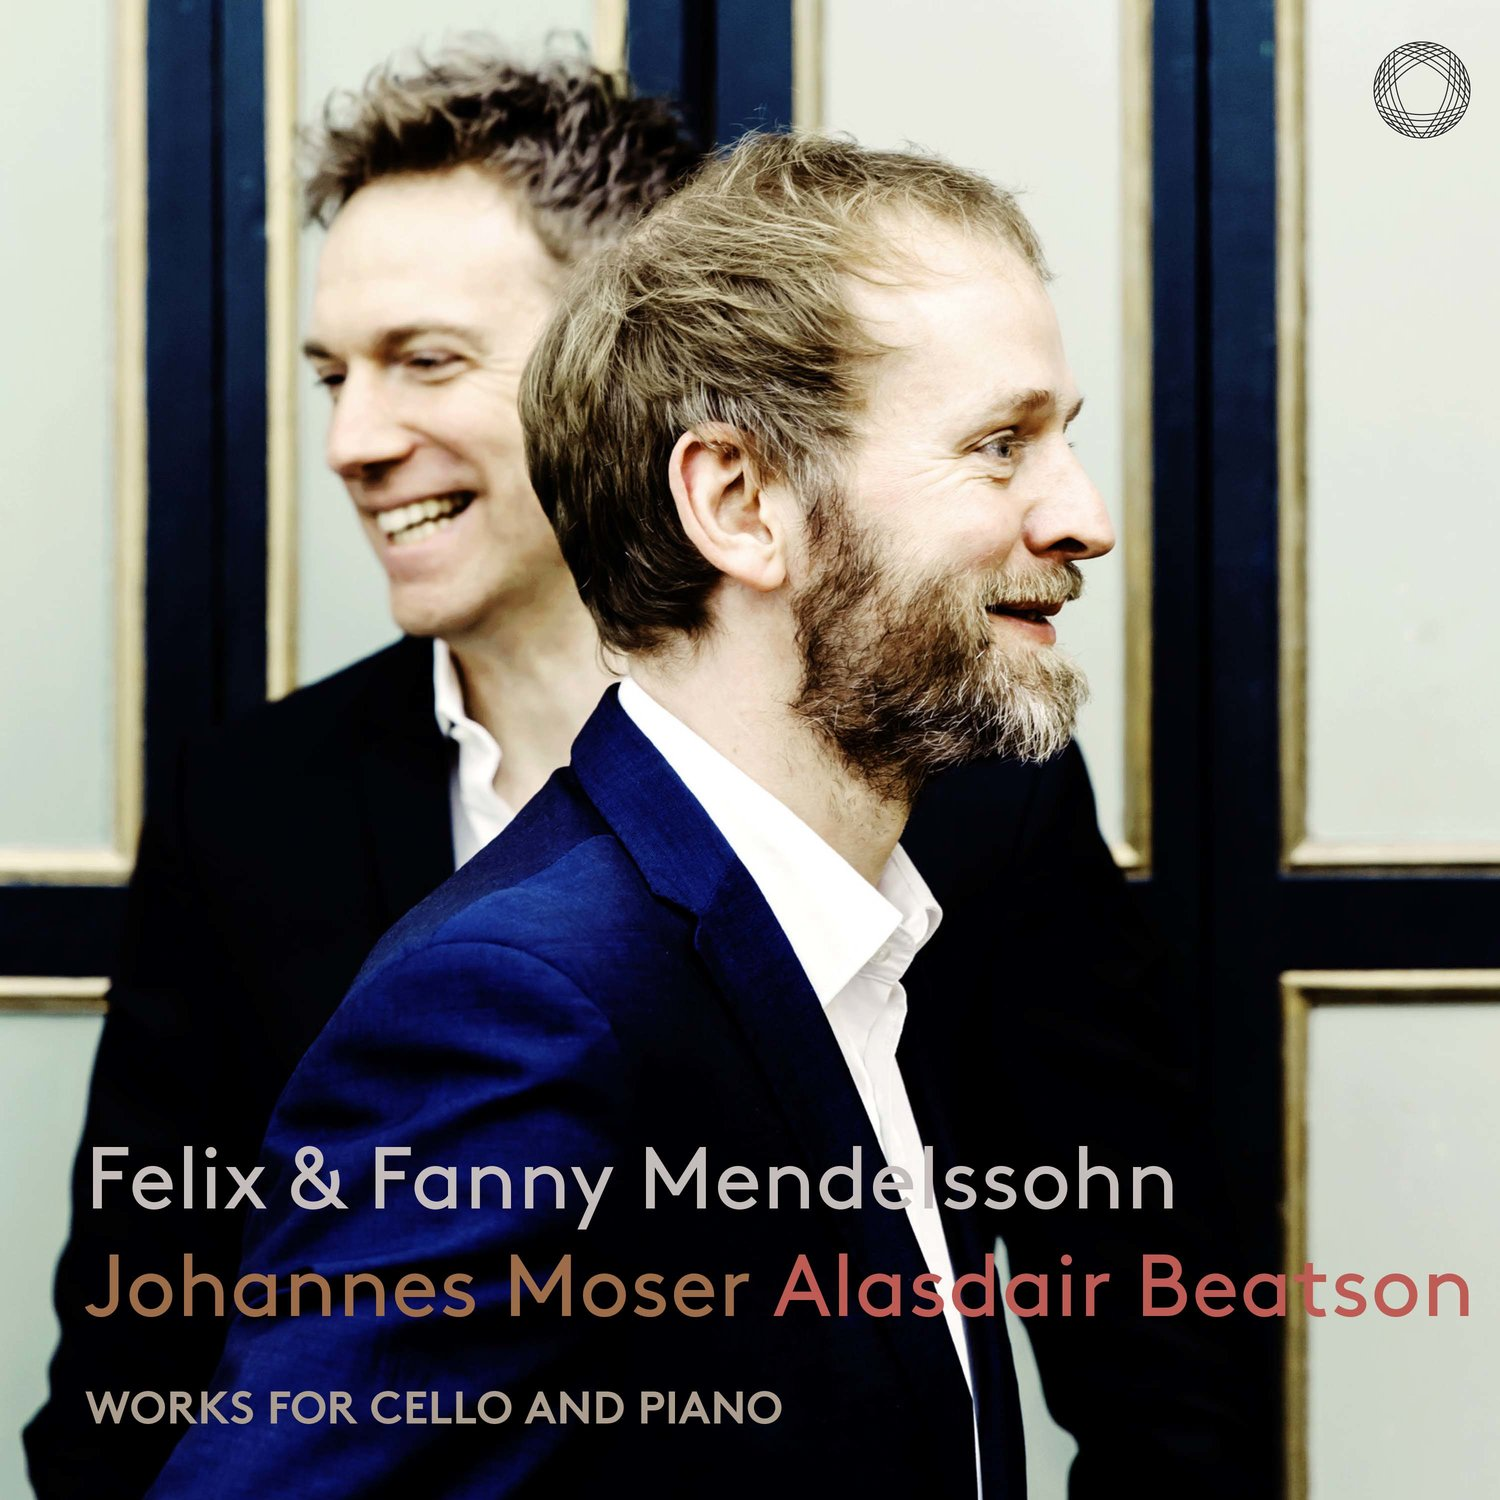 FELIX & FANNY MENDELSSOHN - WORKS FOR CELLO AND PIANO  click here to order the album